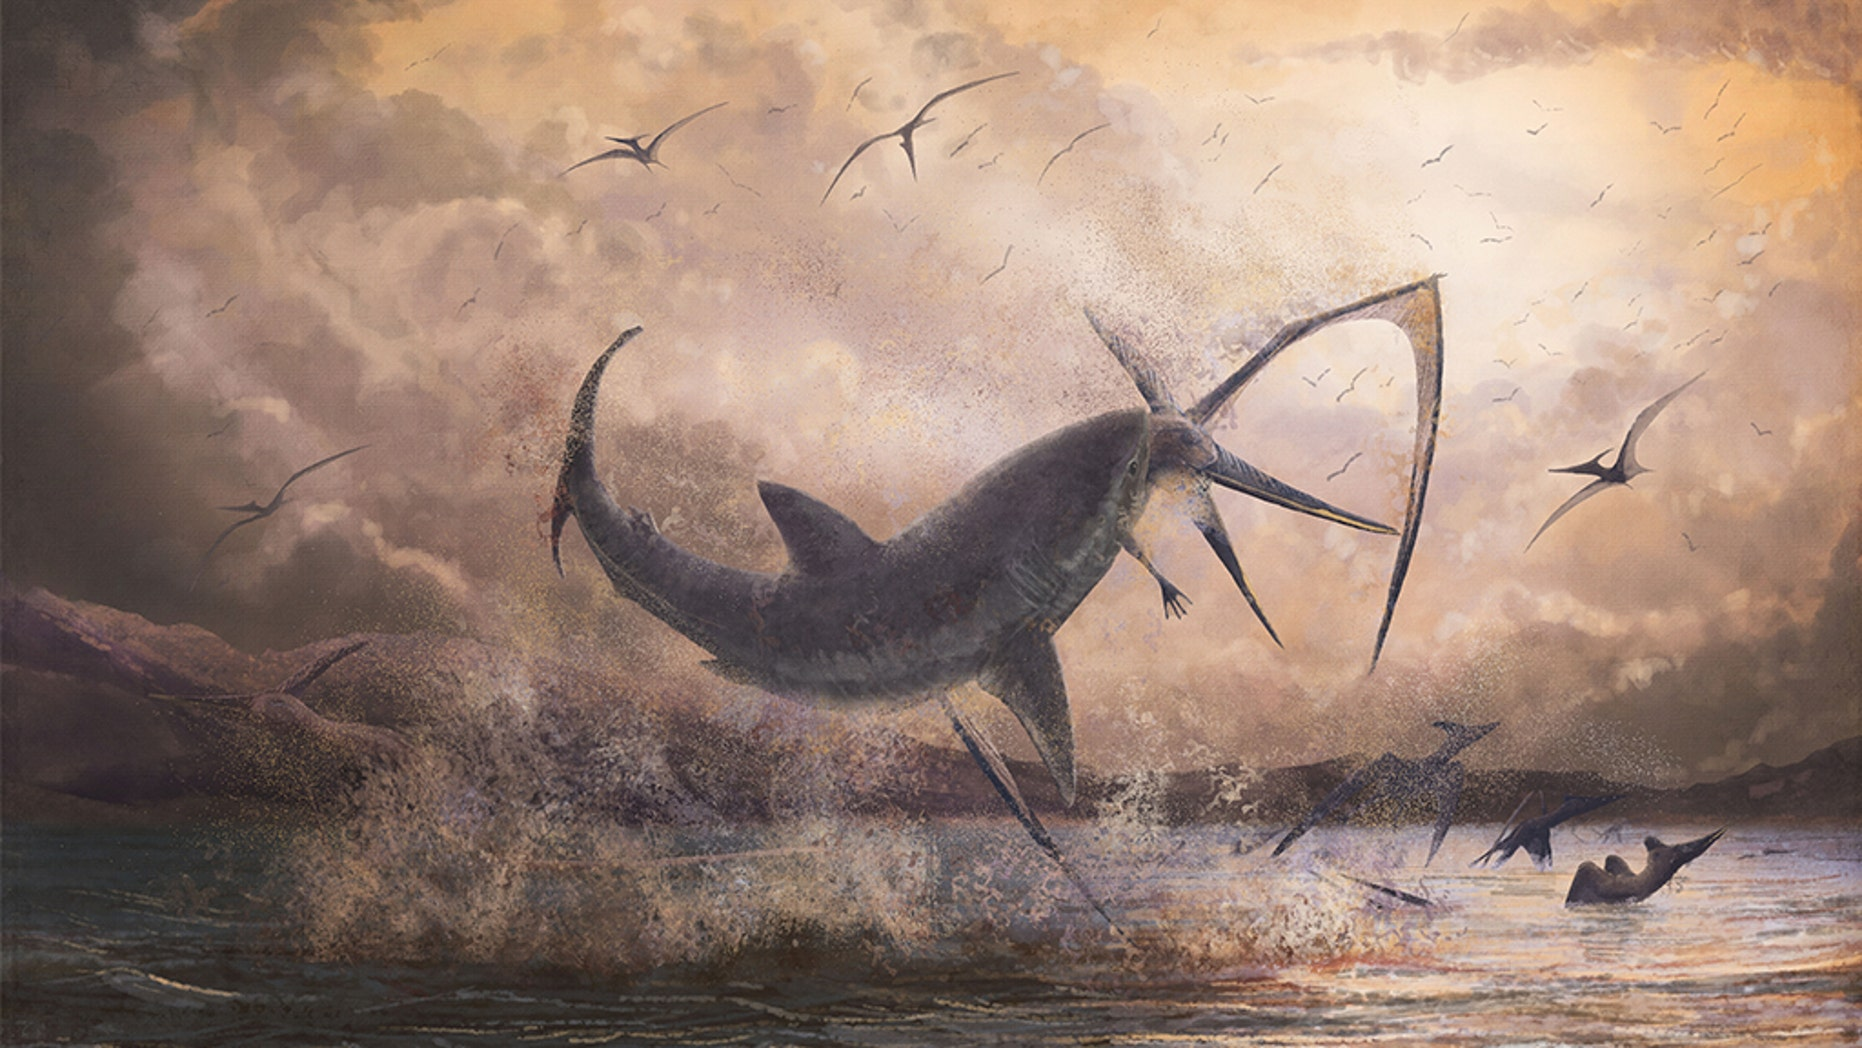 Researchers have discovered fossil evidence that at least one shark in the Cretaceous age caught its food — a flying reptile — in midair. This reconstructed image shows the large Cretoxyrhina mantelli shark biting the neck of a Pteranodon.